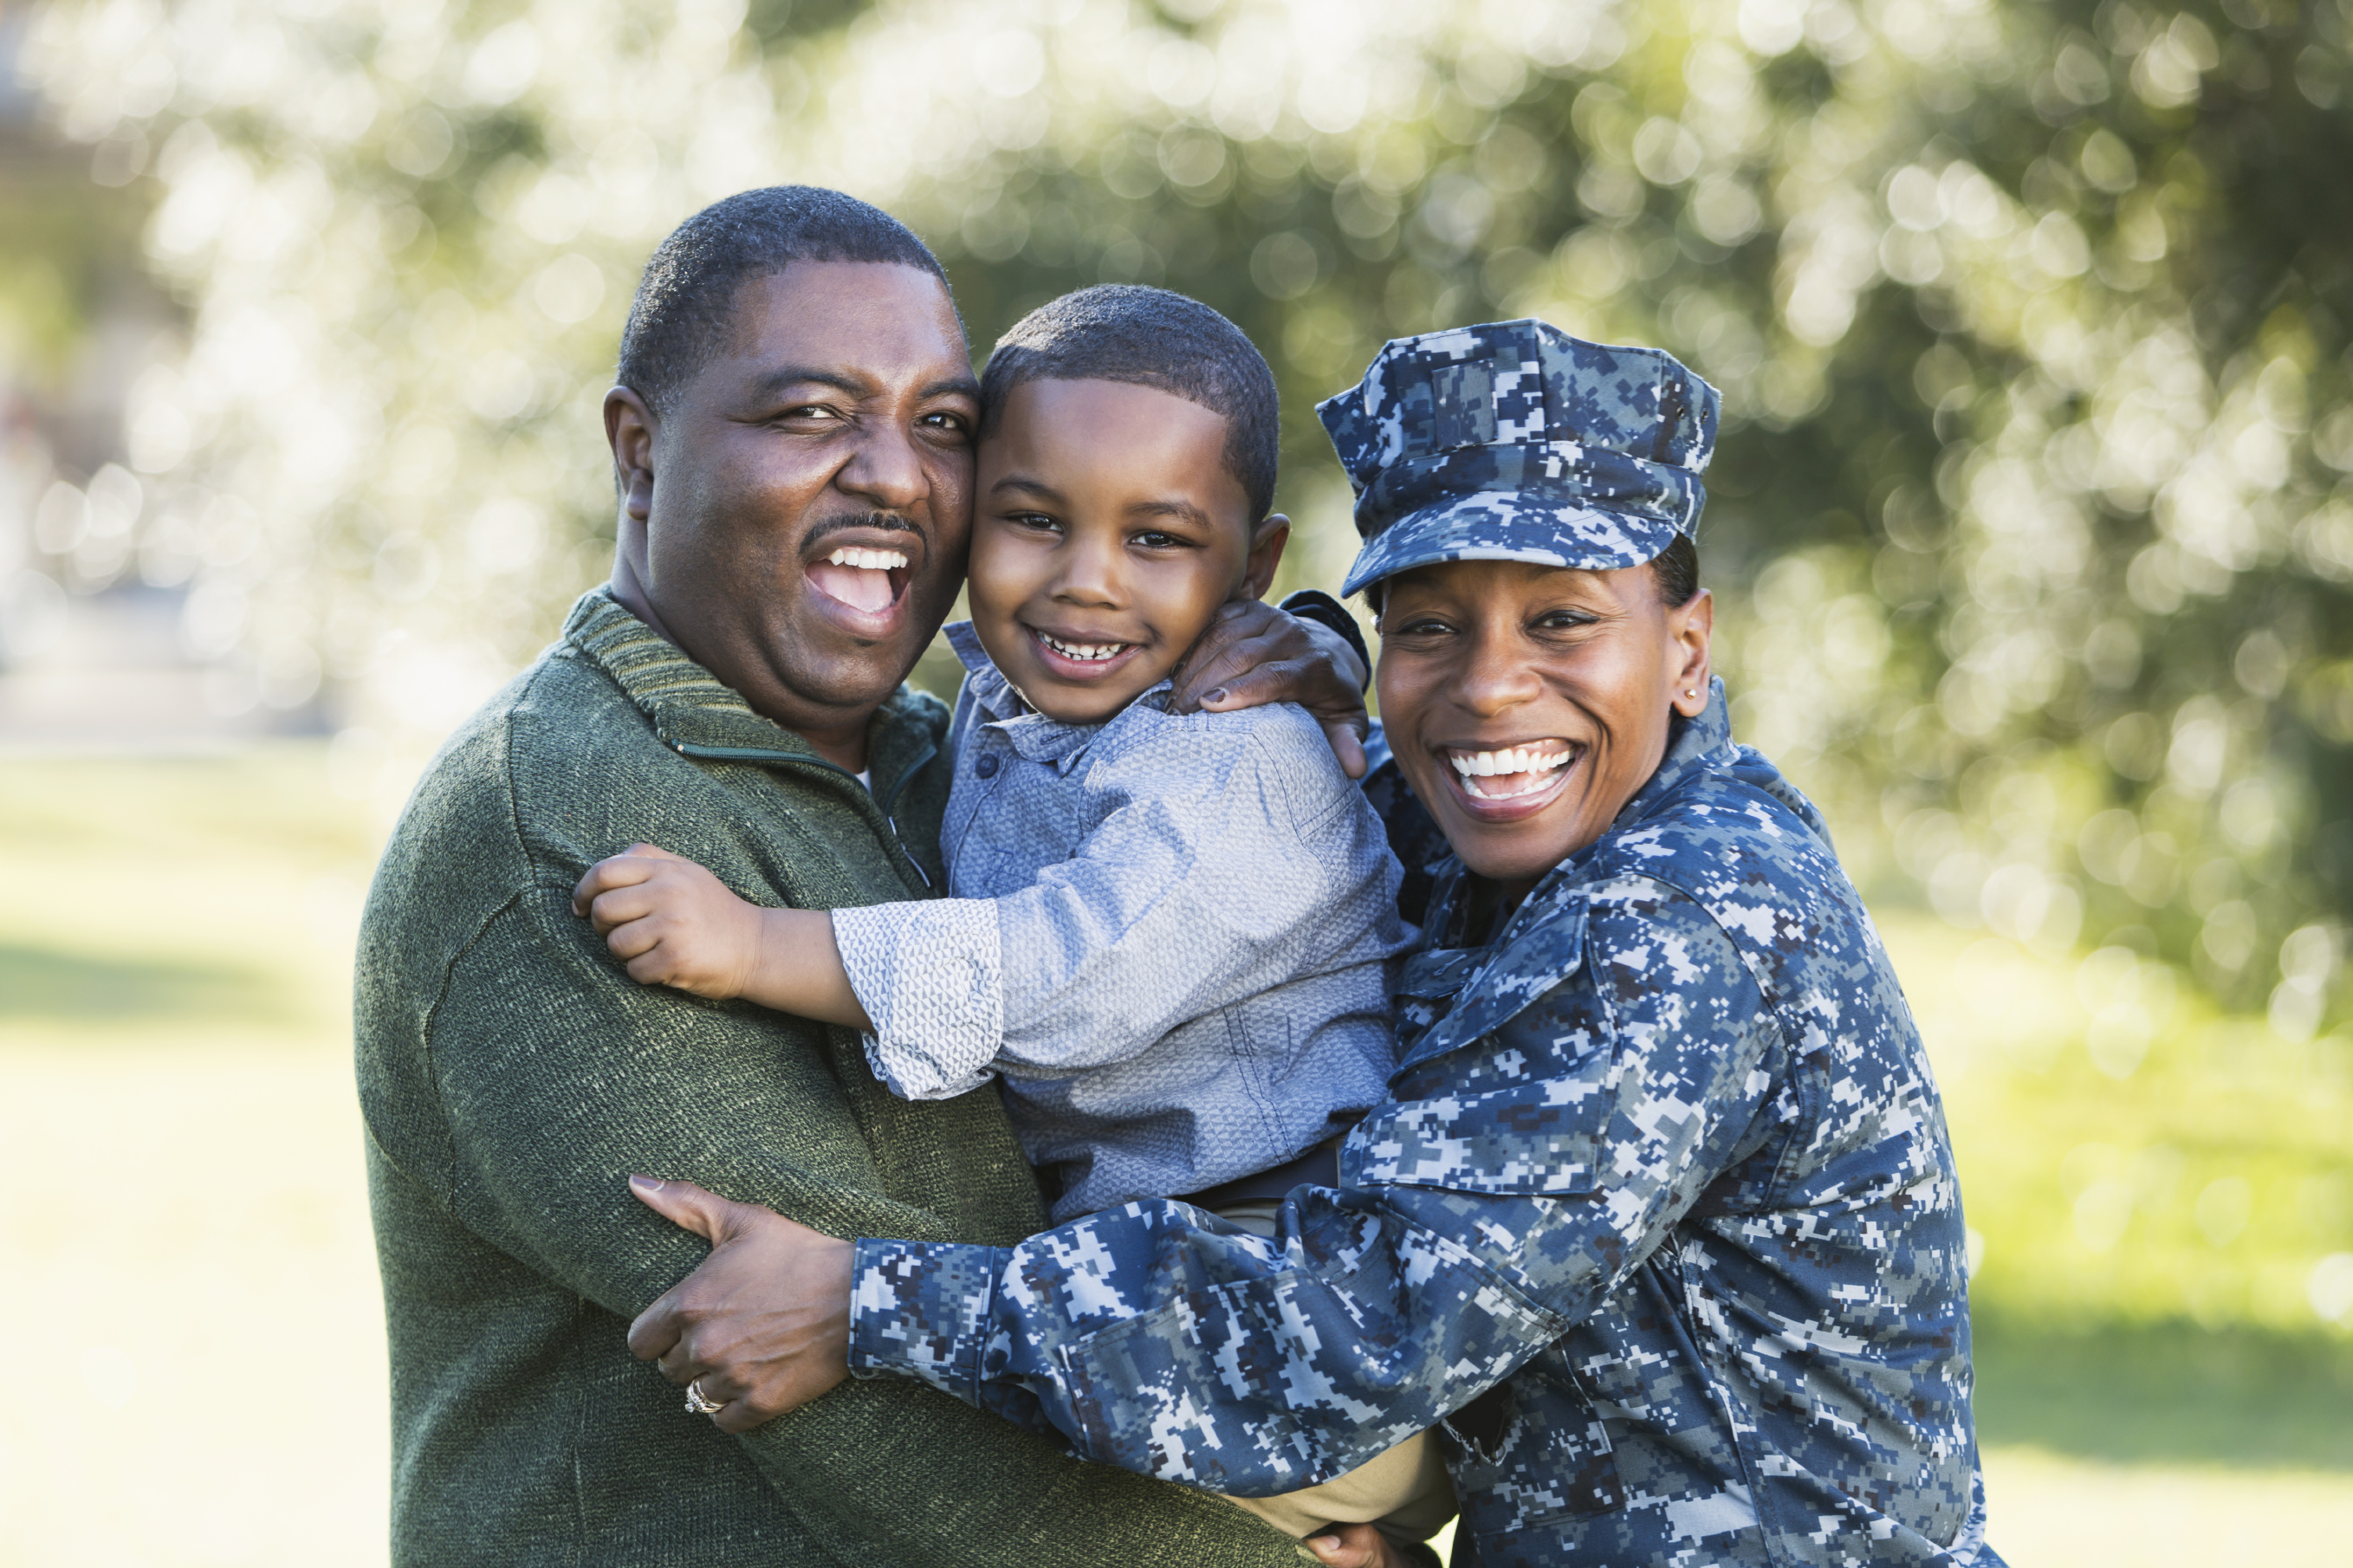 A military homecoming. Portrait of an African American woman wearing navy camouflage uniform standing outdoors with her family. Her husband is holding their 5 year old son who is in the middle between his parents, smiling at the camera. The main focus is on the woman.